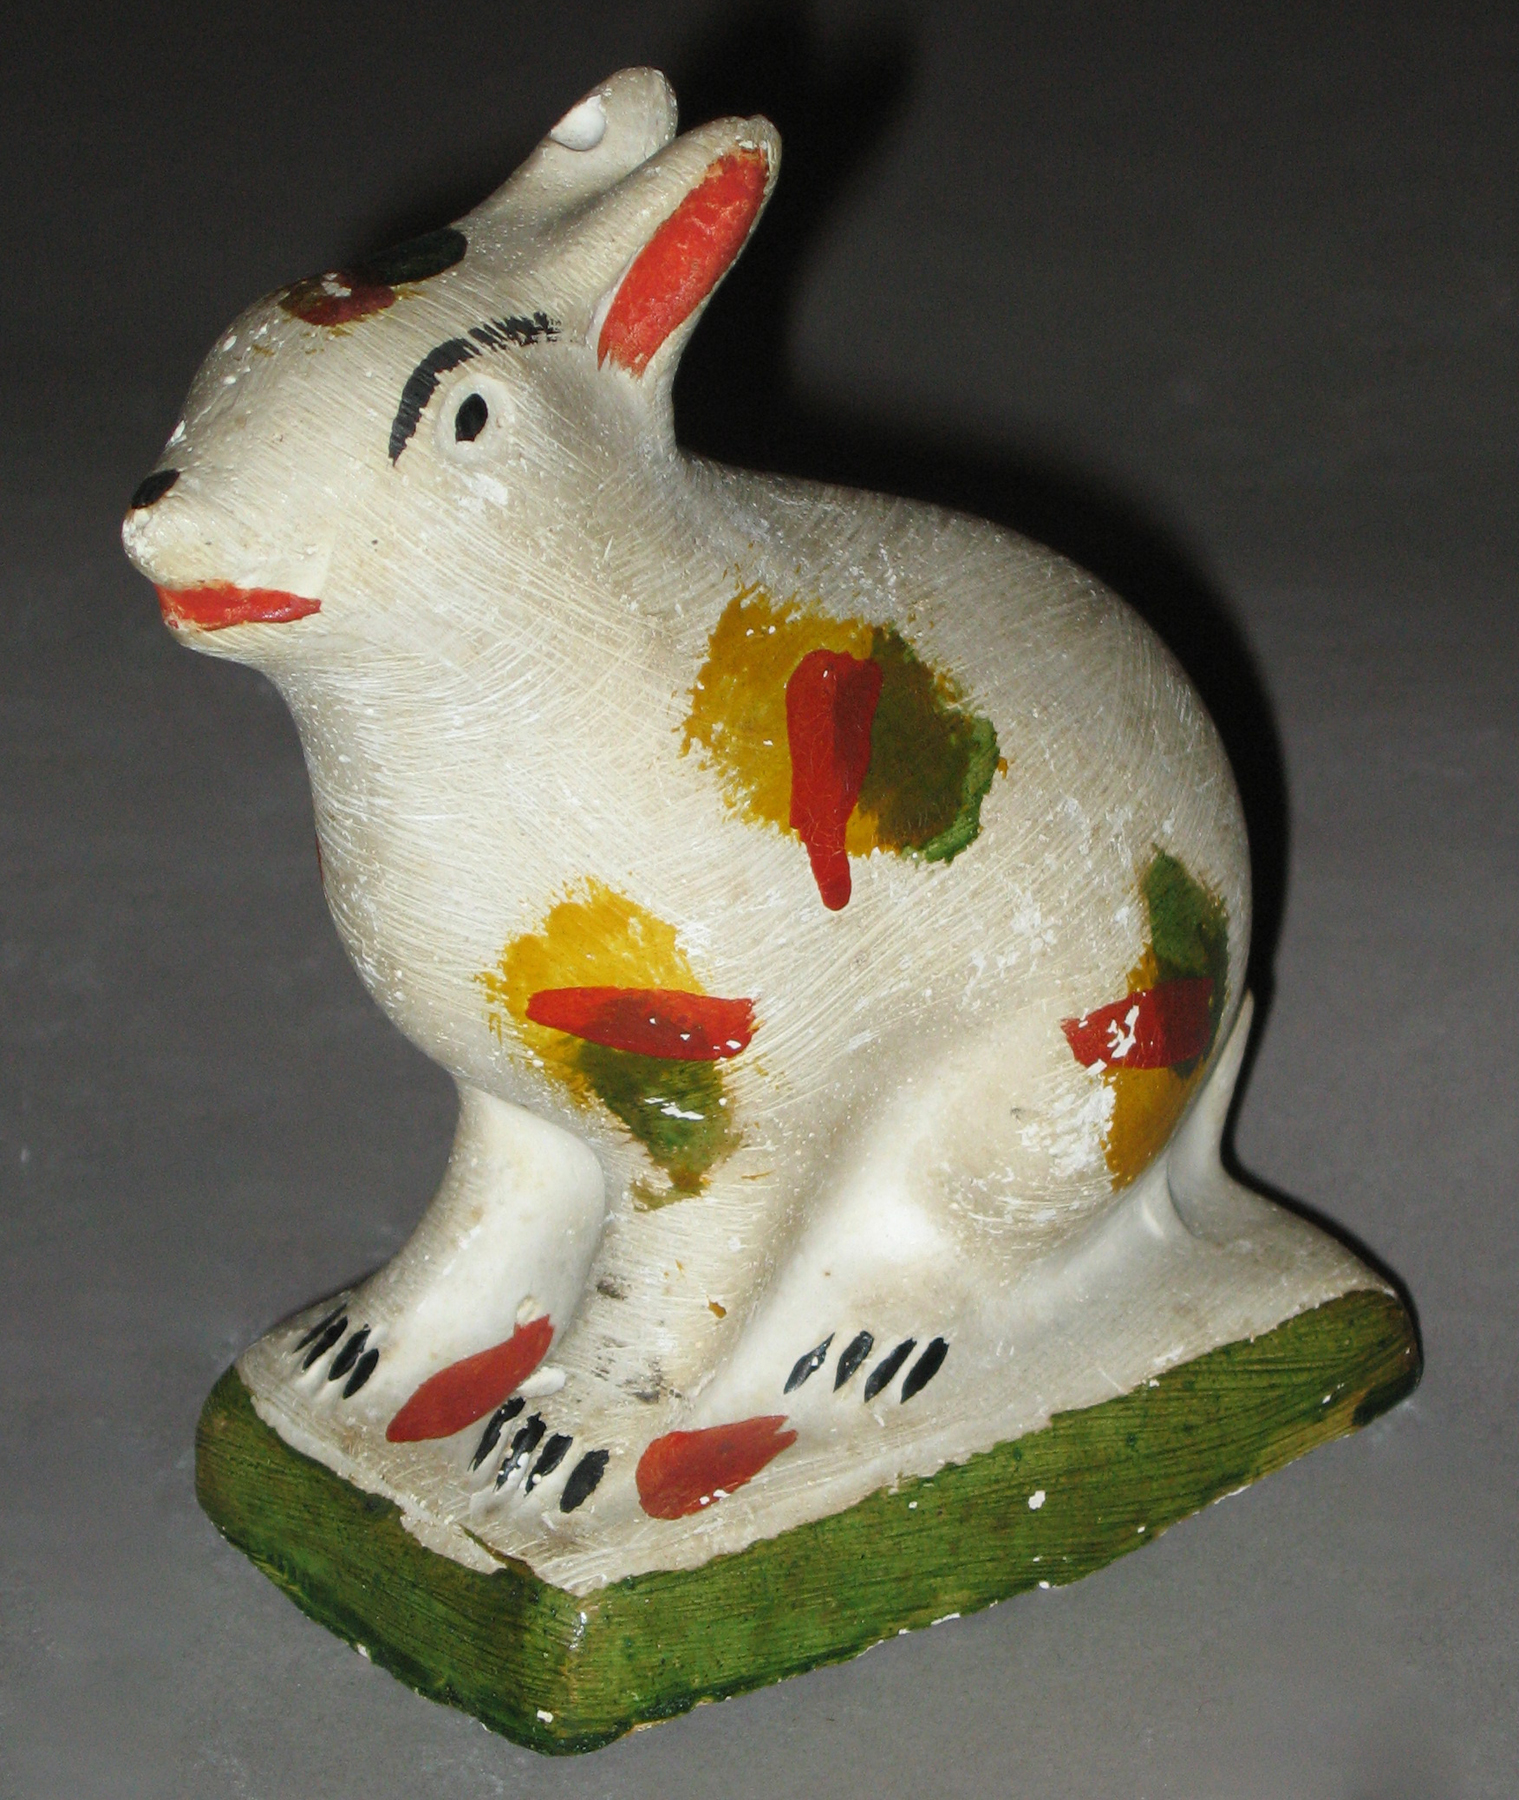 1964.1662 Chalkware rabbit